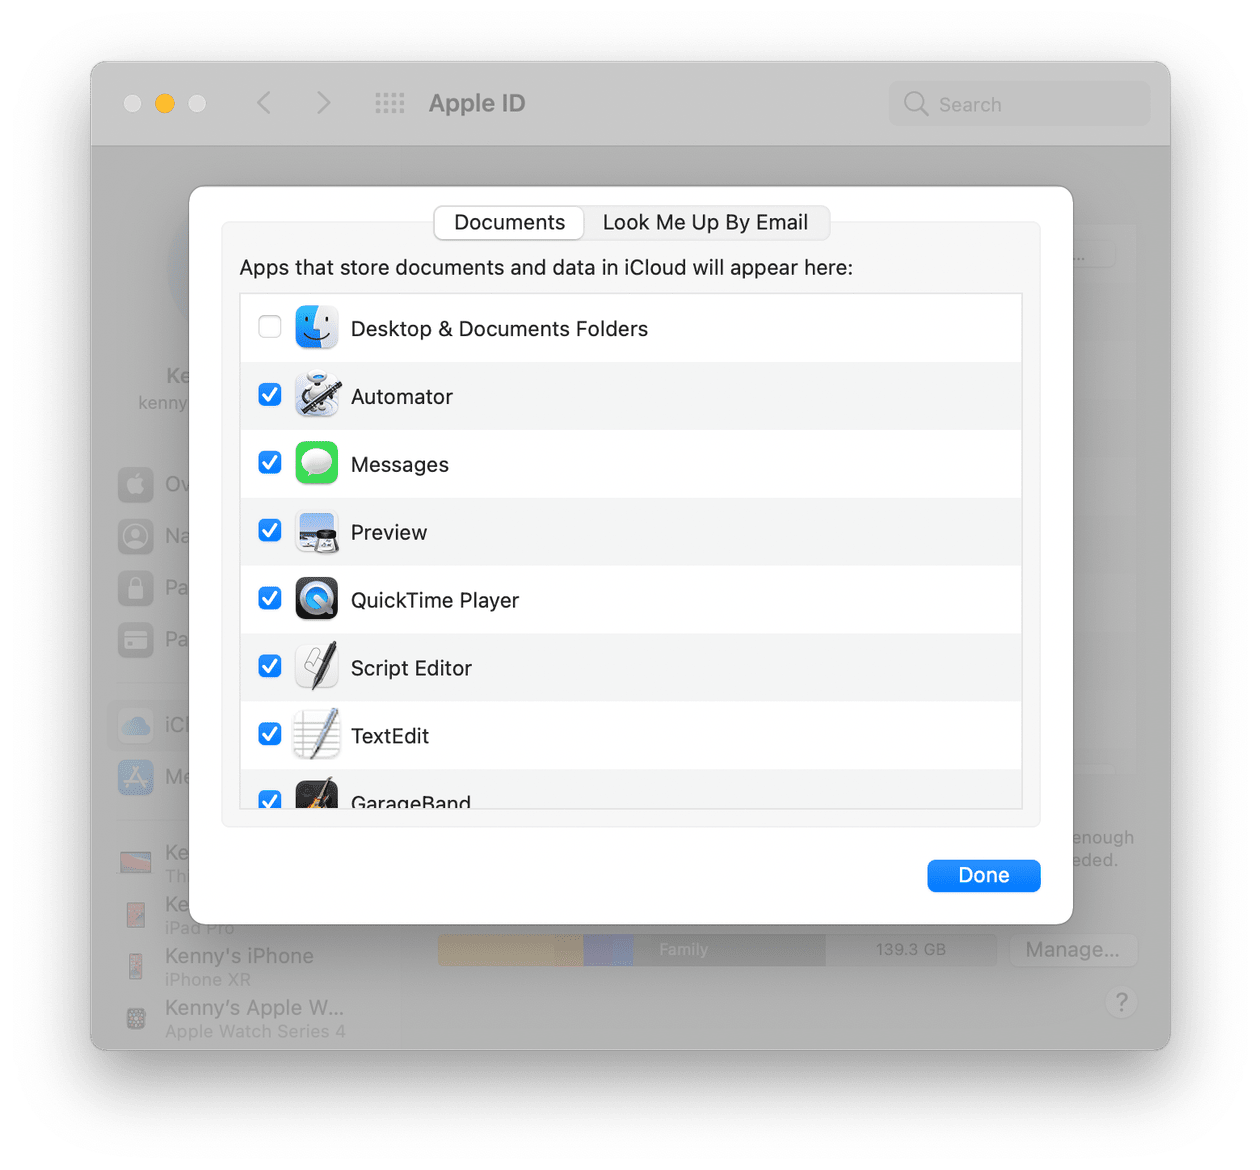 How to manage accesses on Mac